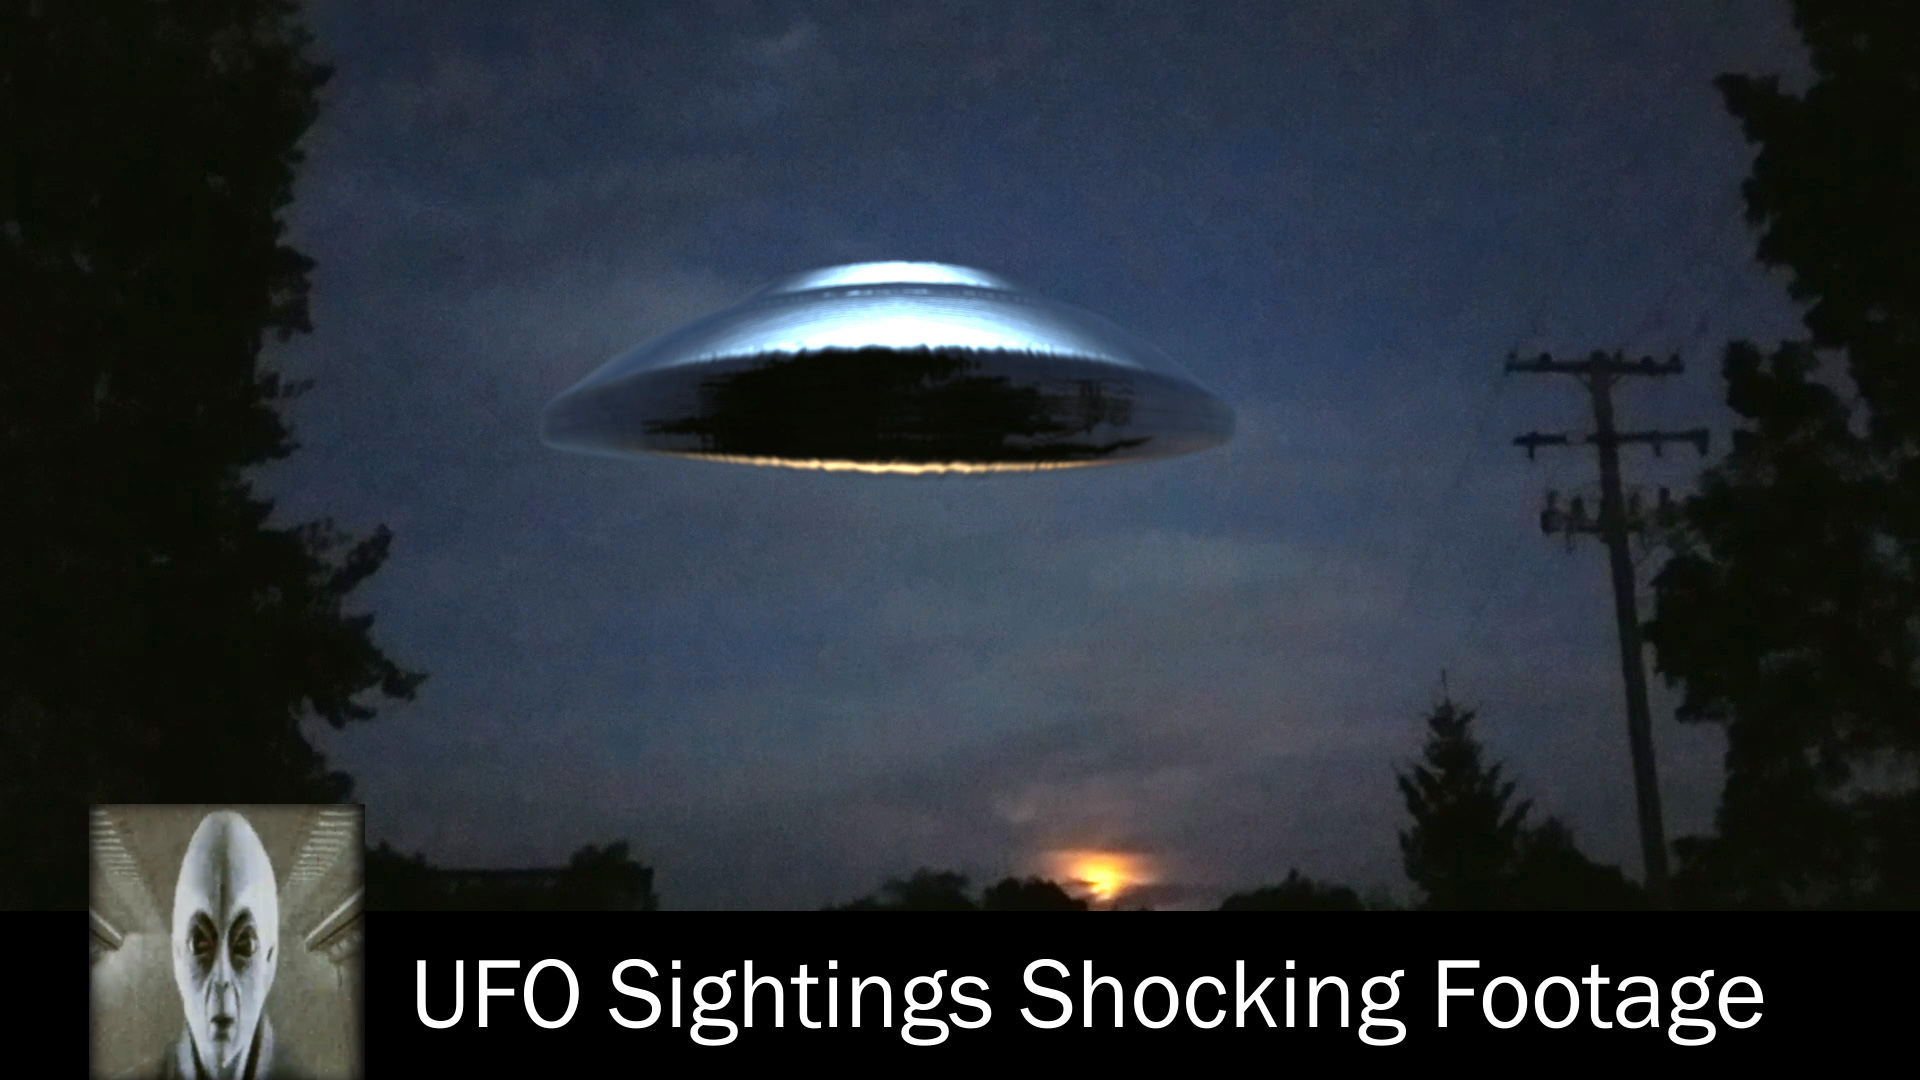 UFO Sightings Shocking Footage June 4th 2017